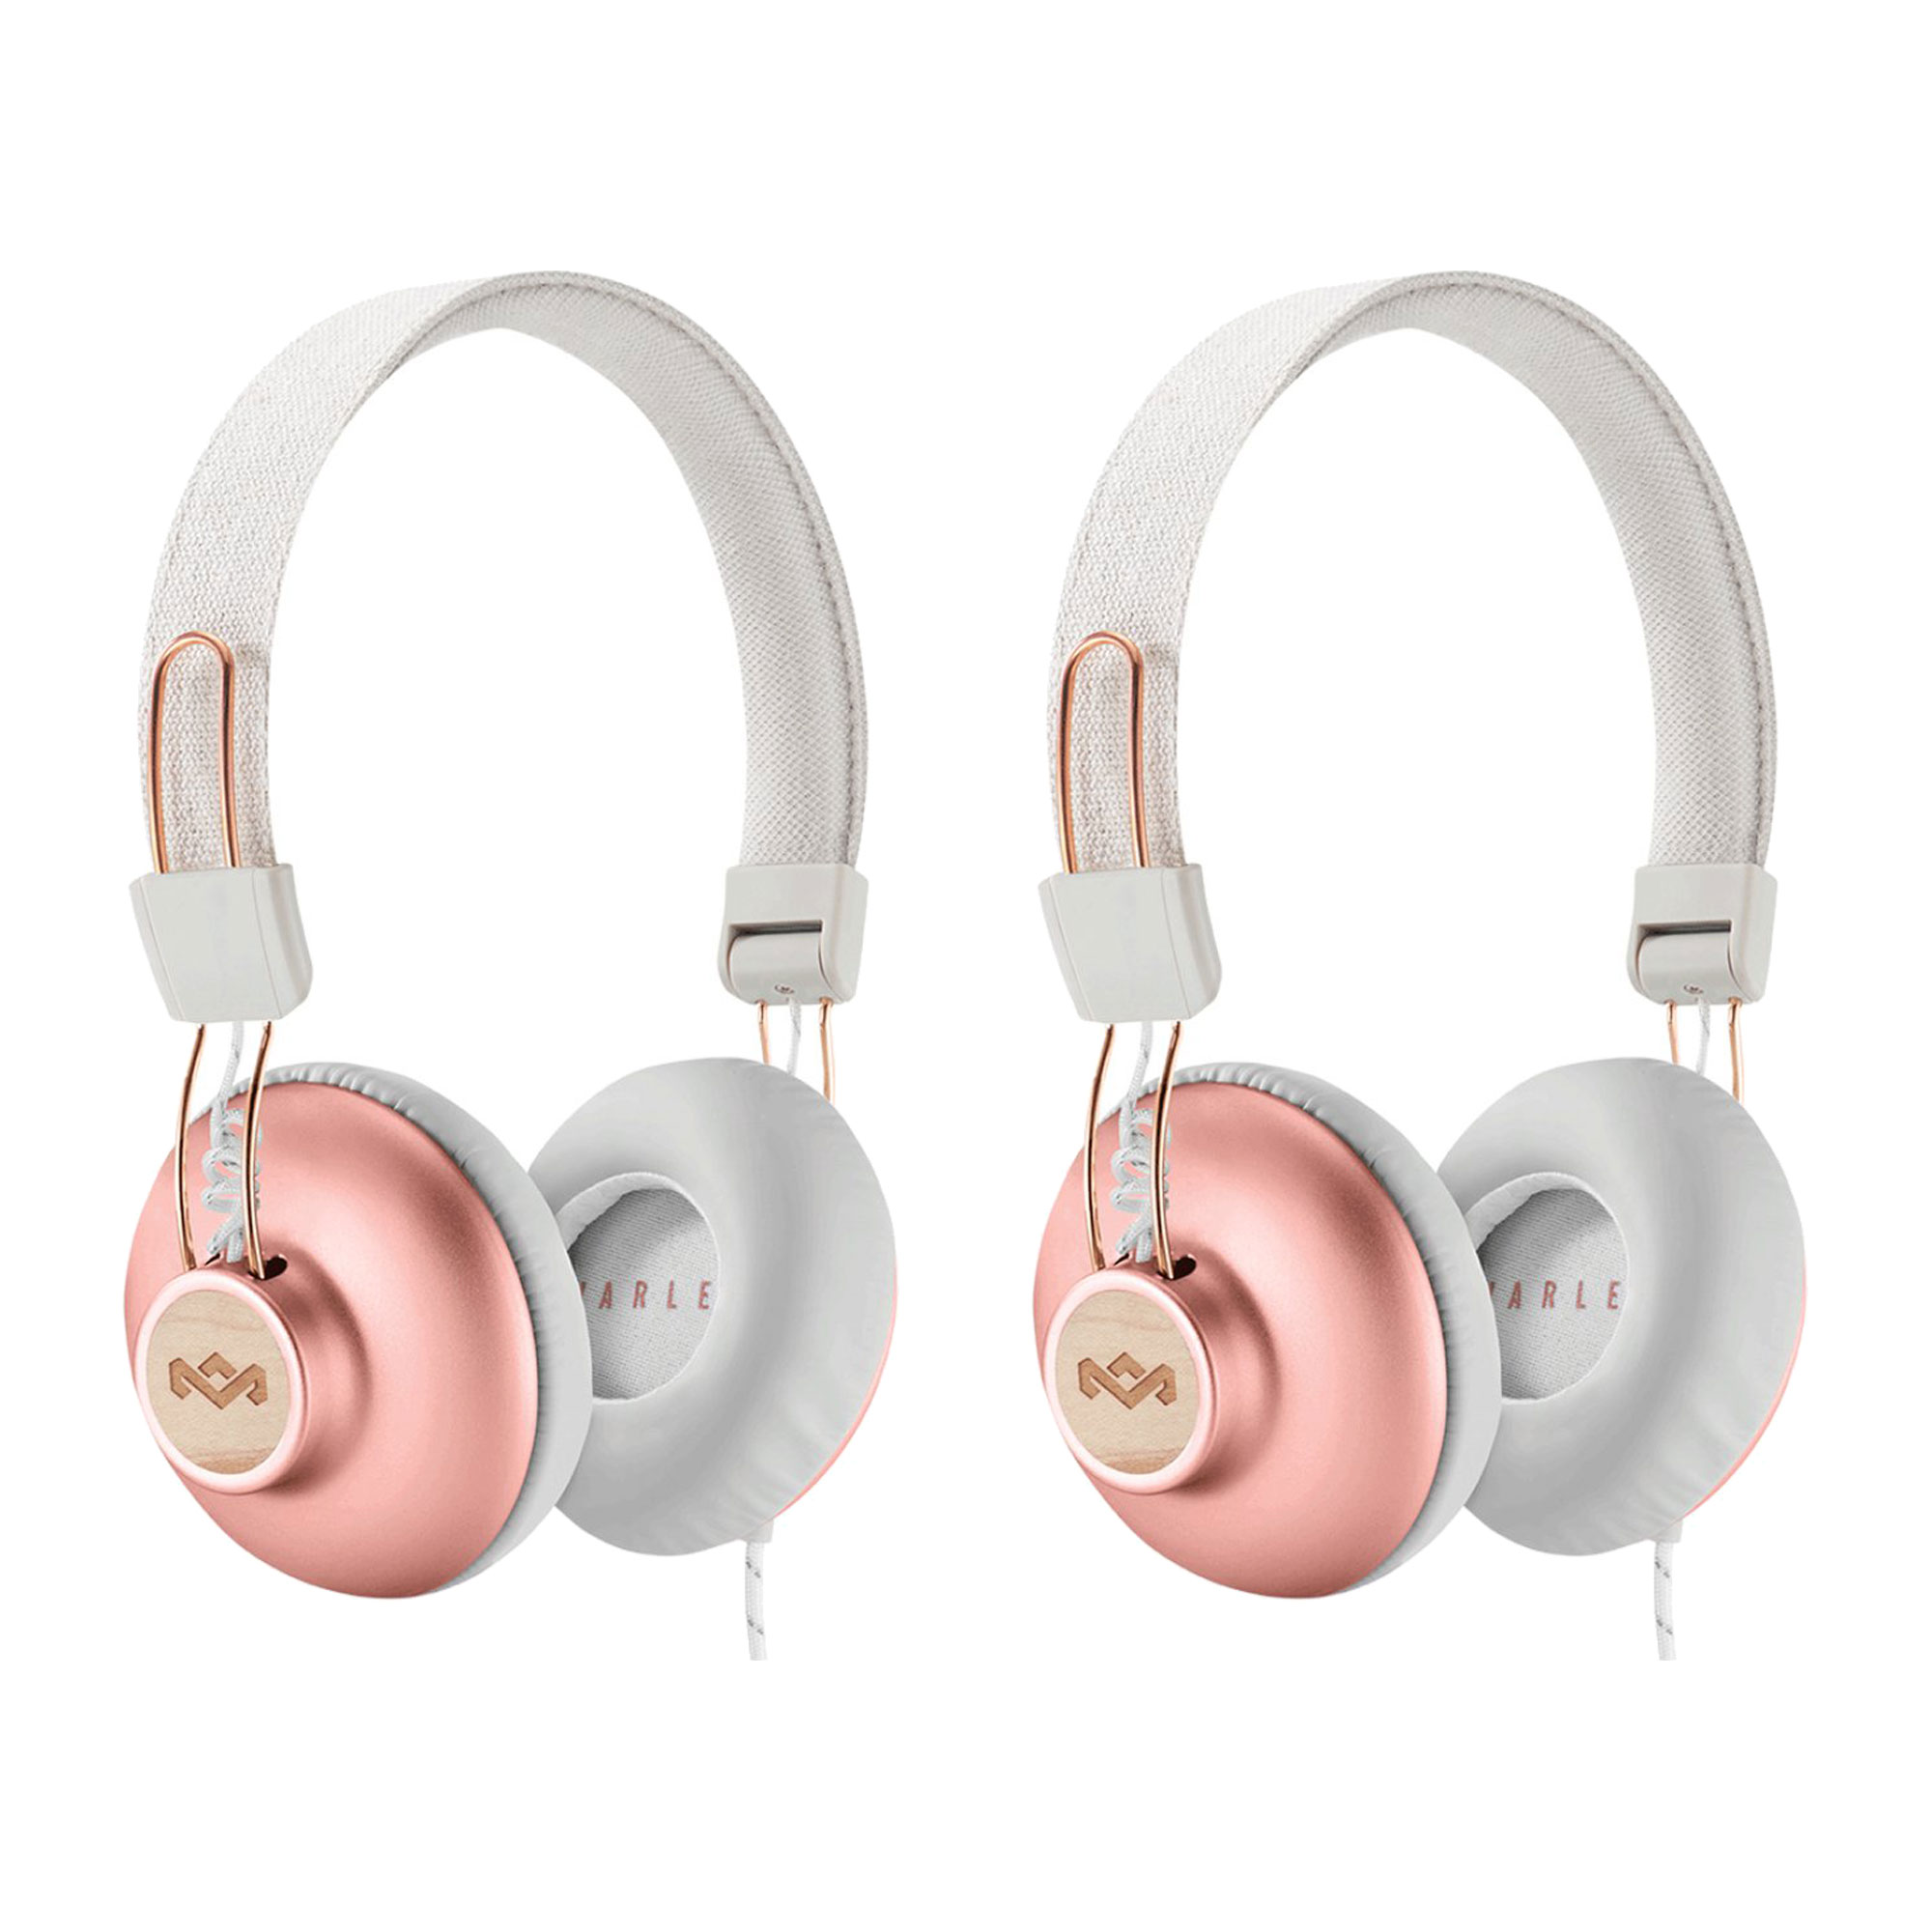 House of Marley Positive Vibration 2 On Ear Wired Headphones, Copper (2 Pack)